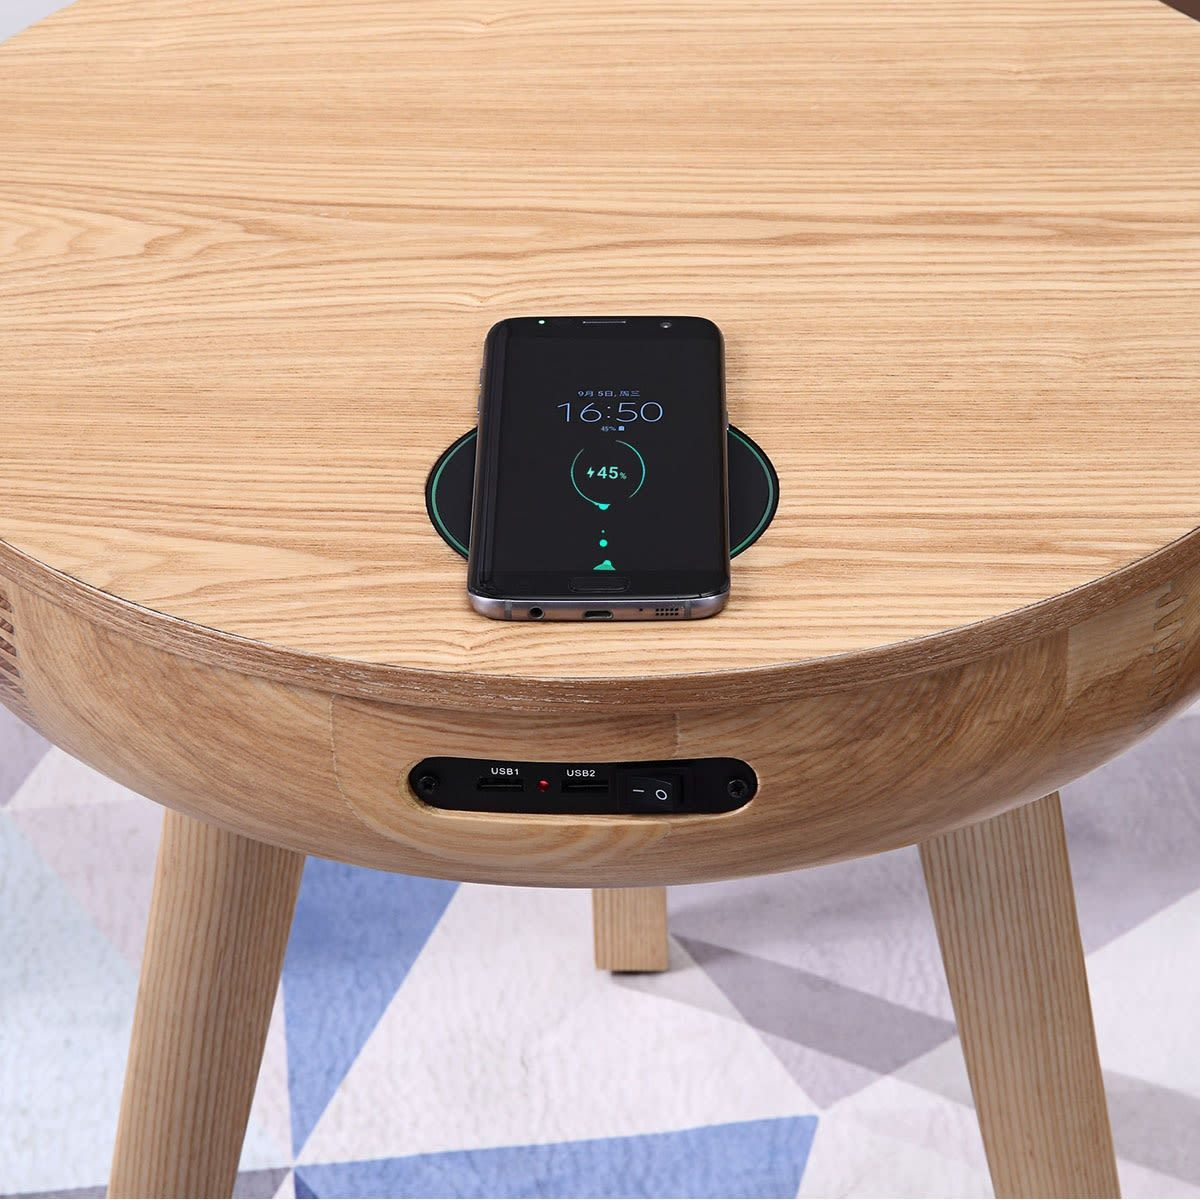 San Francisco Round Lamp Table With Qi Wireless Charger Usb Ports